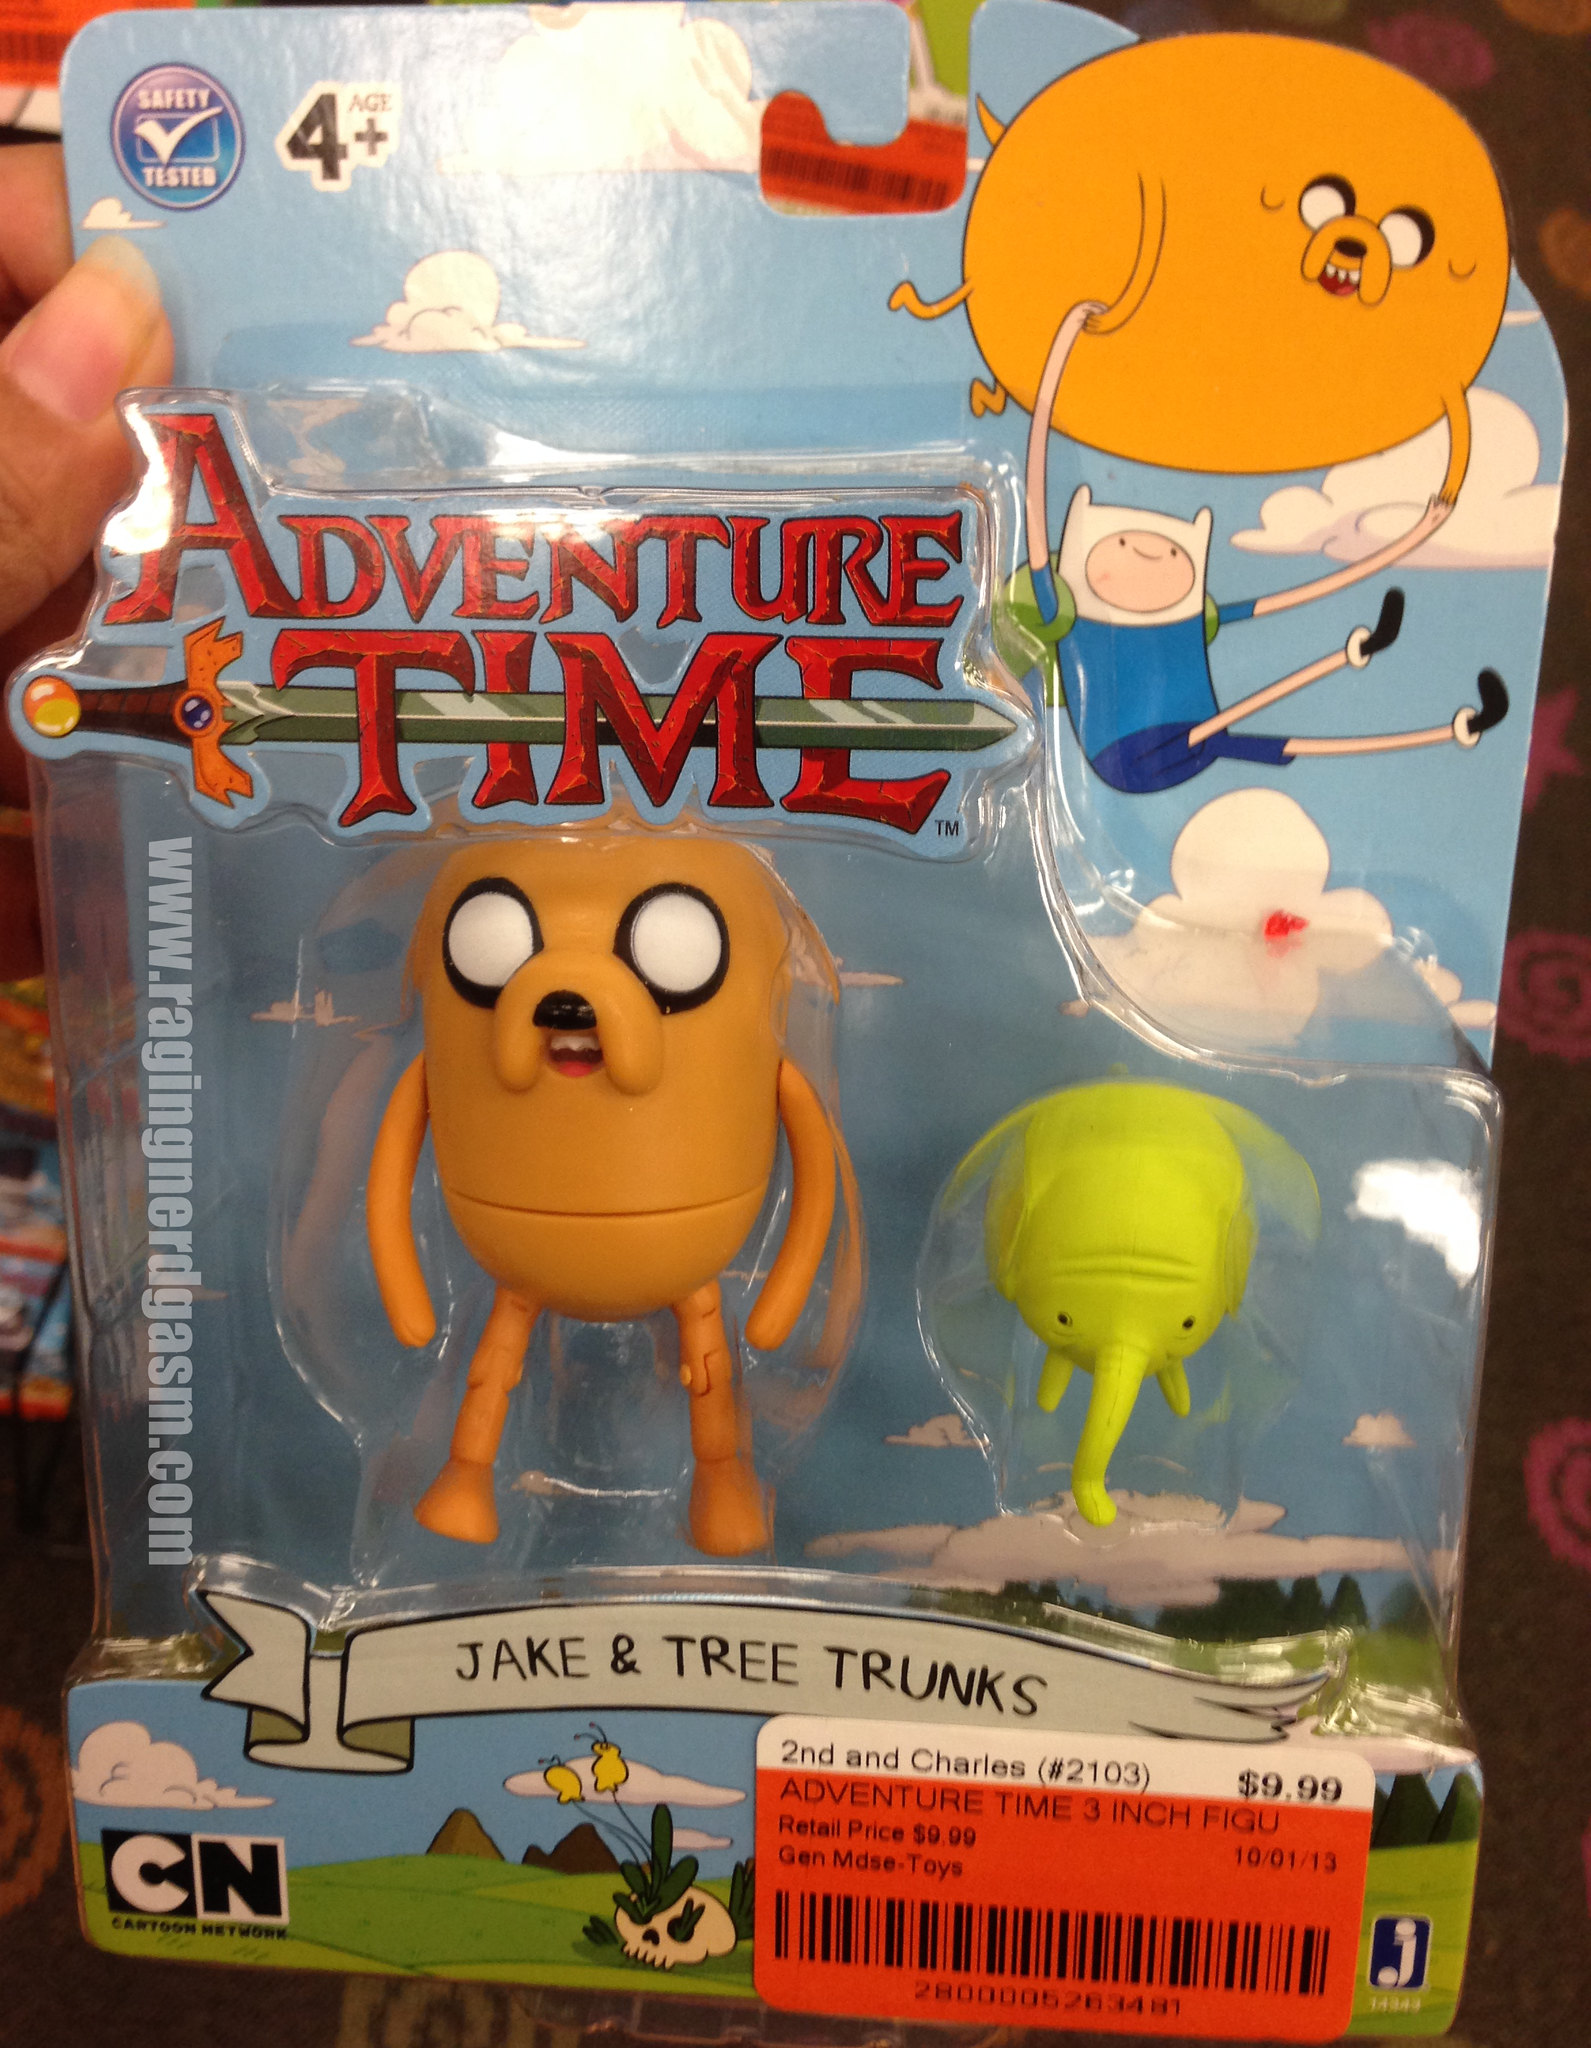 Adventure Time Figures series 3 - Jake and Tree Trunks